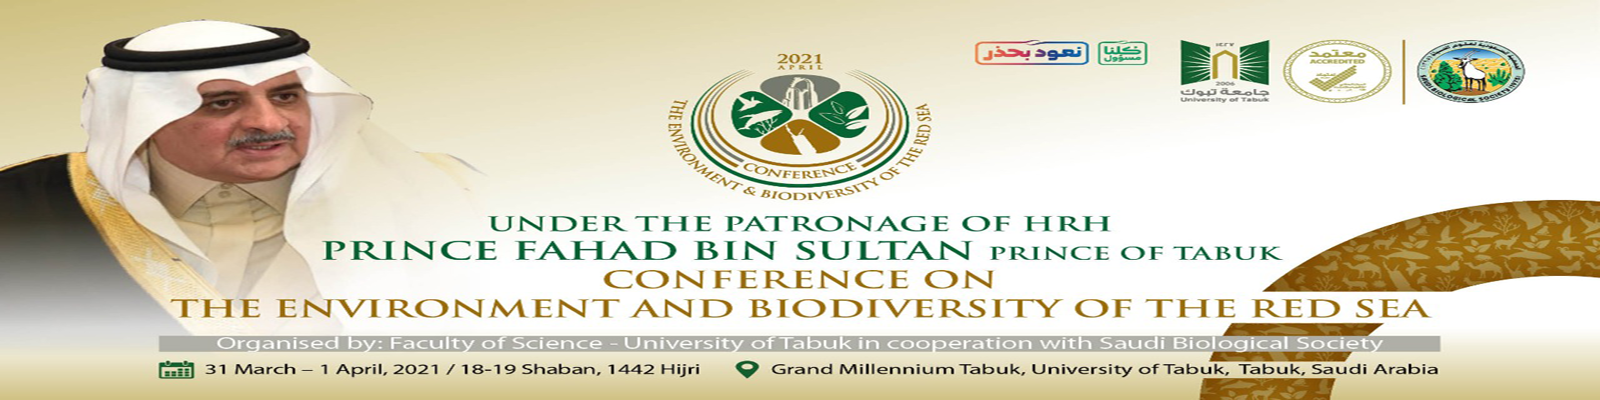 """Call For Abstracts - Conference on """"The Environment and Biodiversity..."""